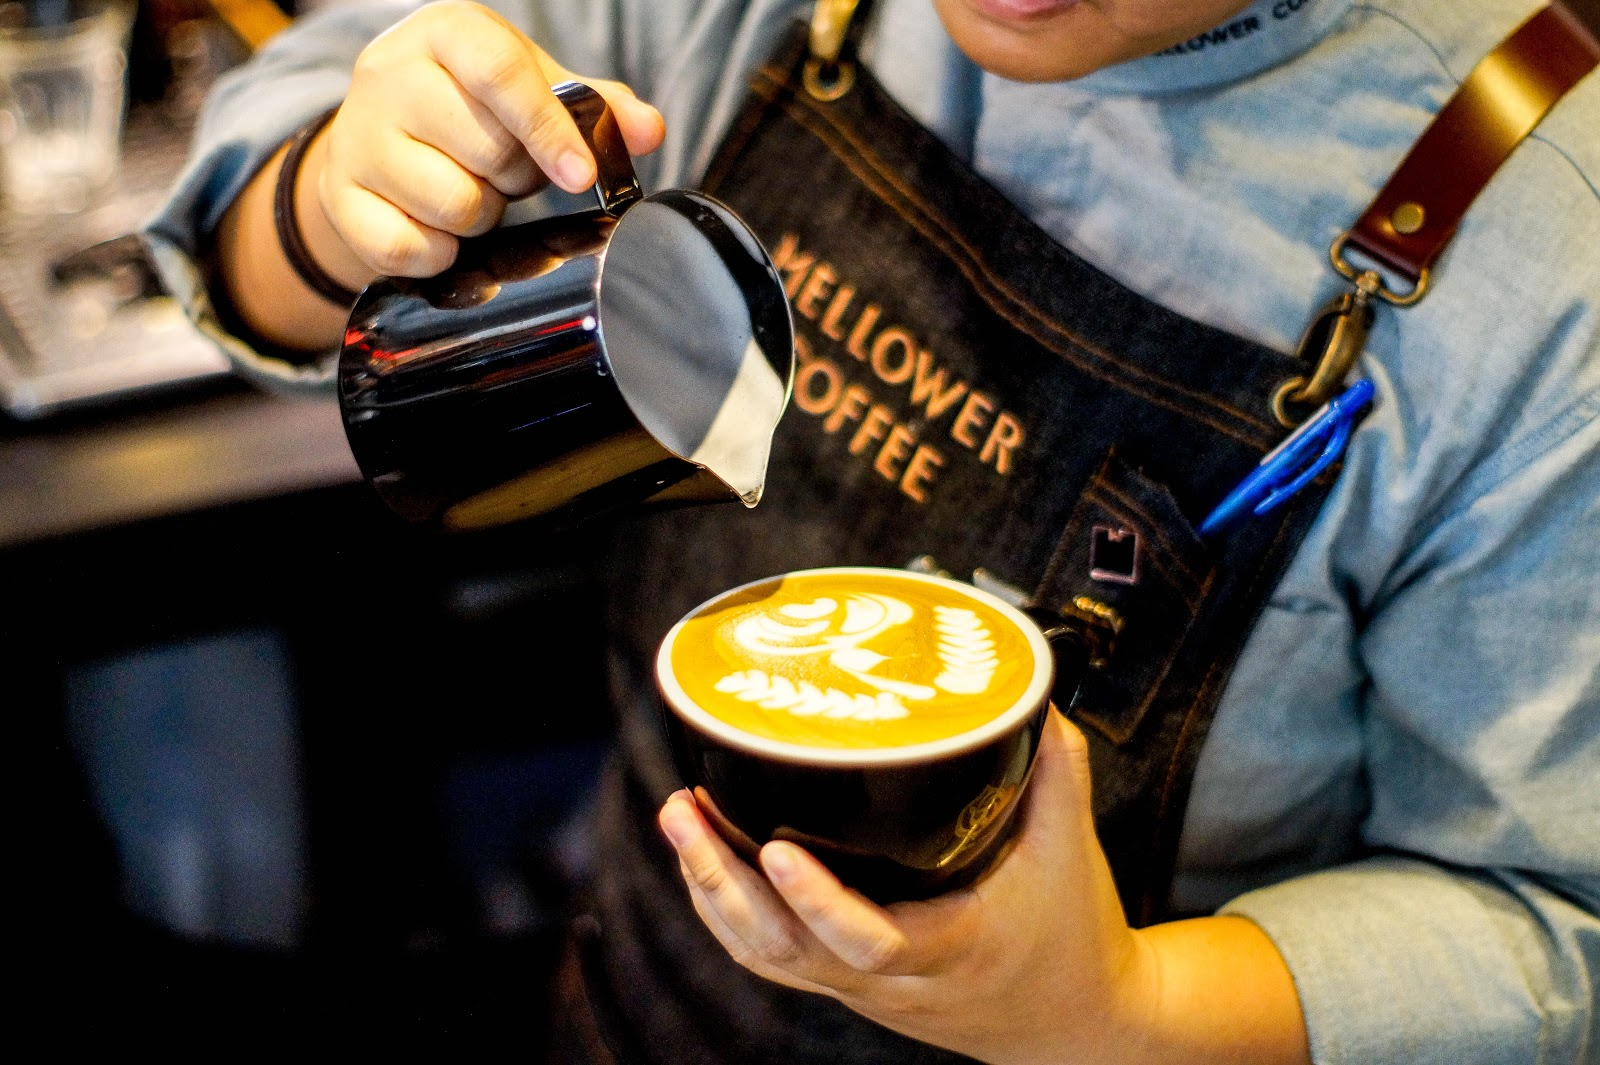 A man pouring milk into a cup of coffee to create latte art.